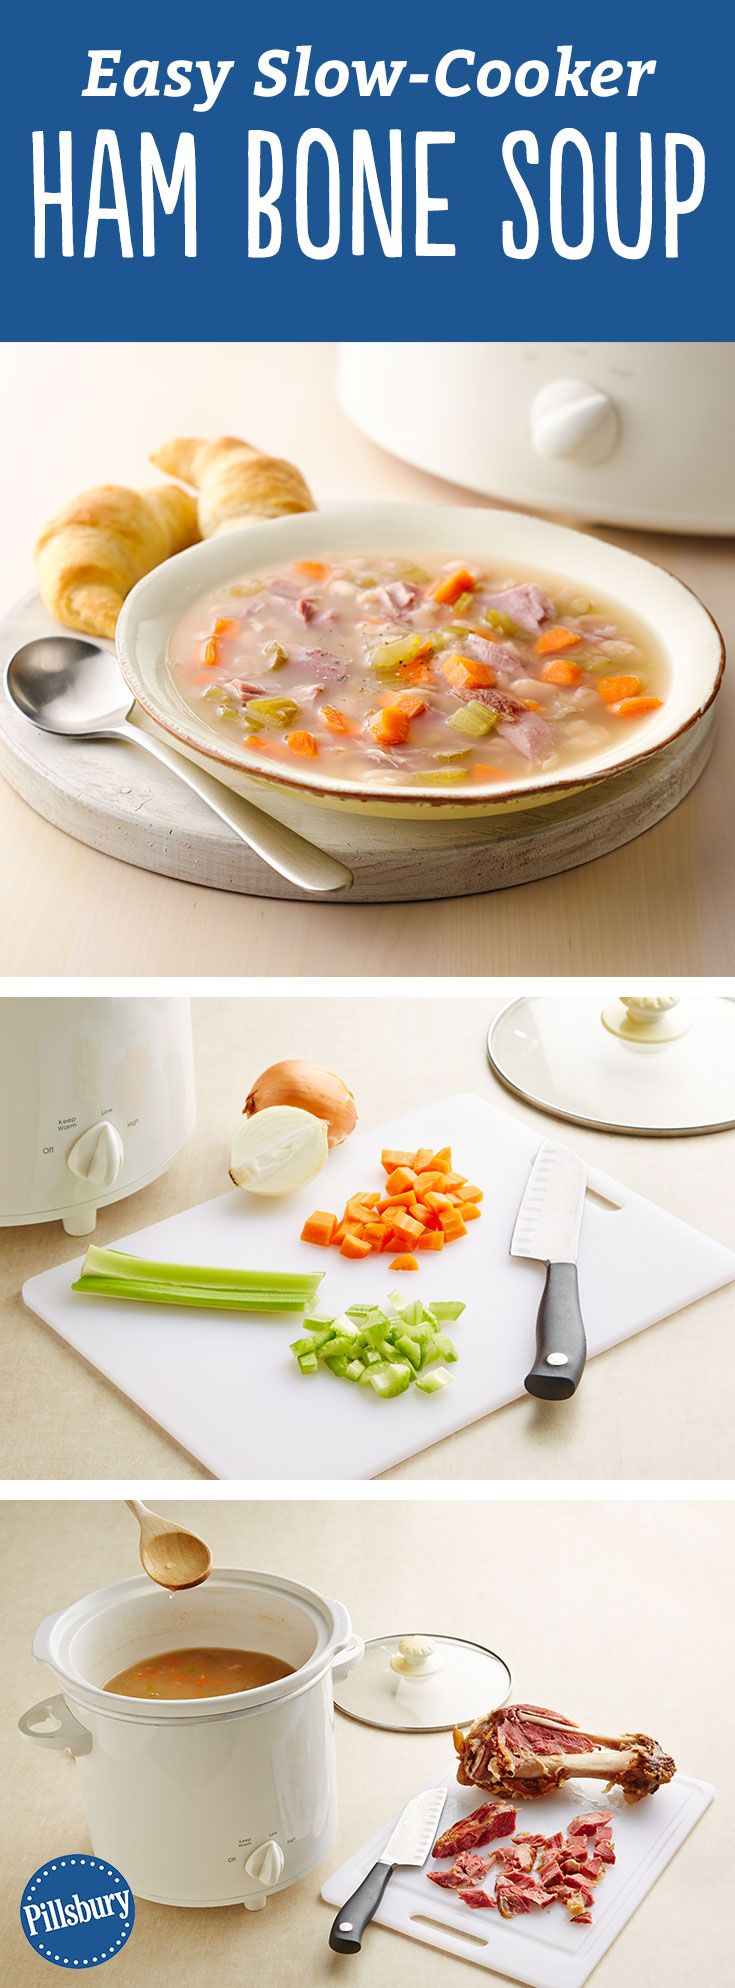 This soup hits the spot, big time! Make classic + hearty ham bone soup (loaded with vegetables and beans) the easy way, right in your slow cooker. For even more flavor, add 1 bay leaf for the last hour of cook time. It's delicious served on its own for an easy meal, or with hot-from-the oven crescents or biscuits for dunking.